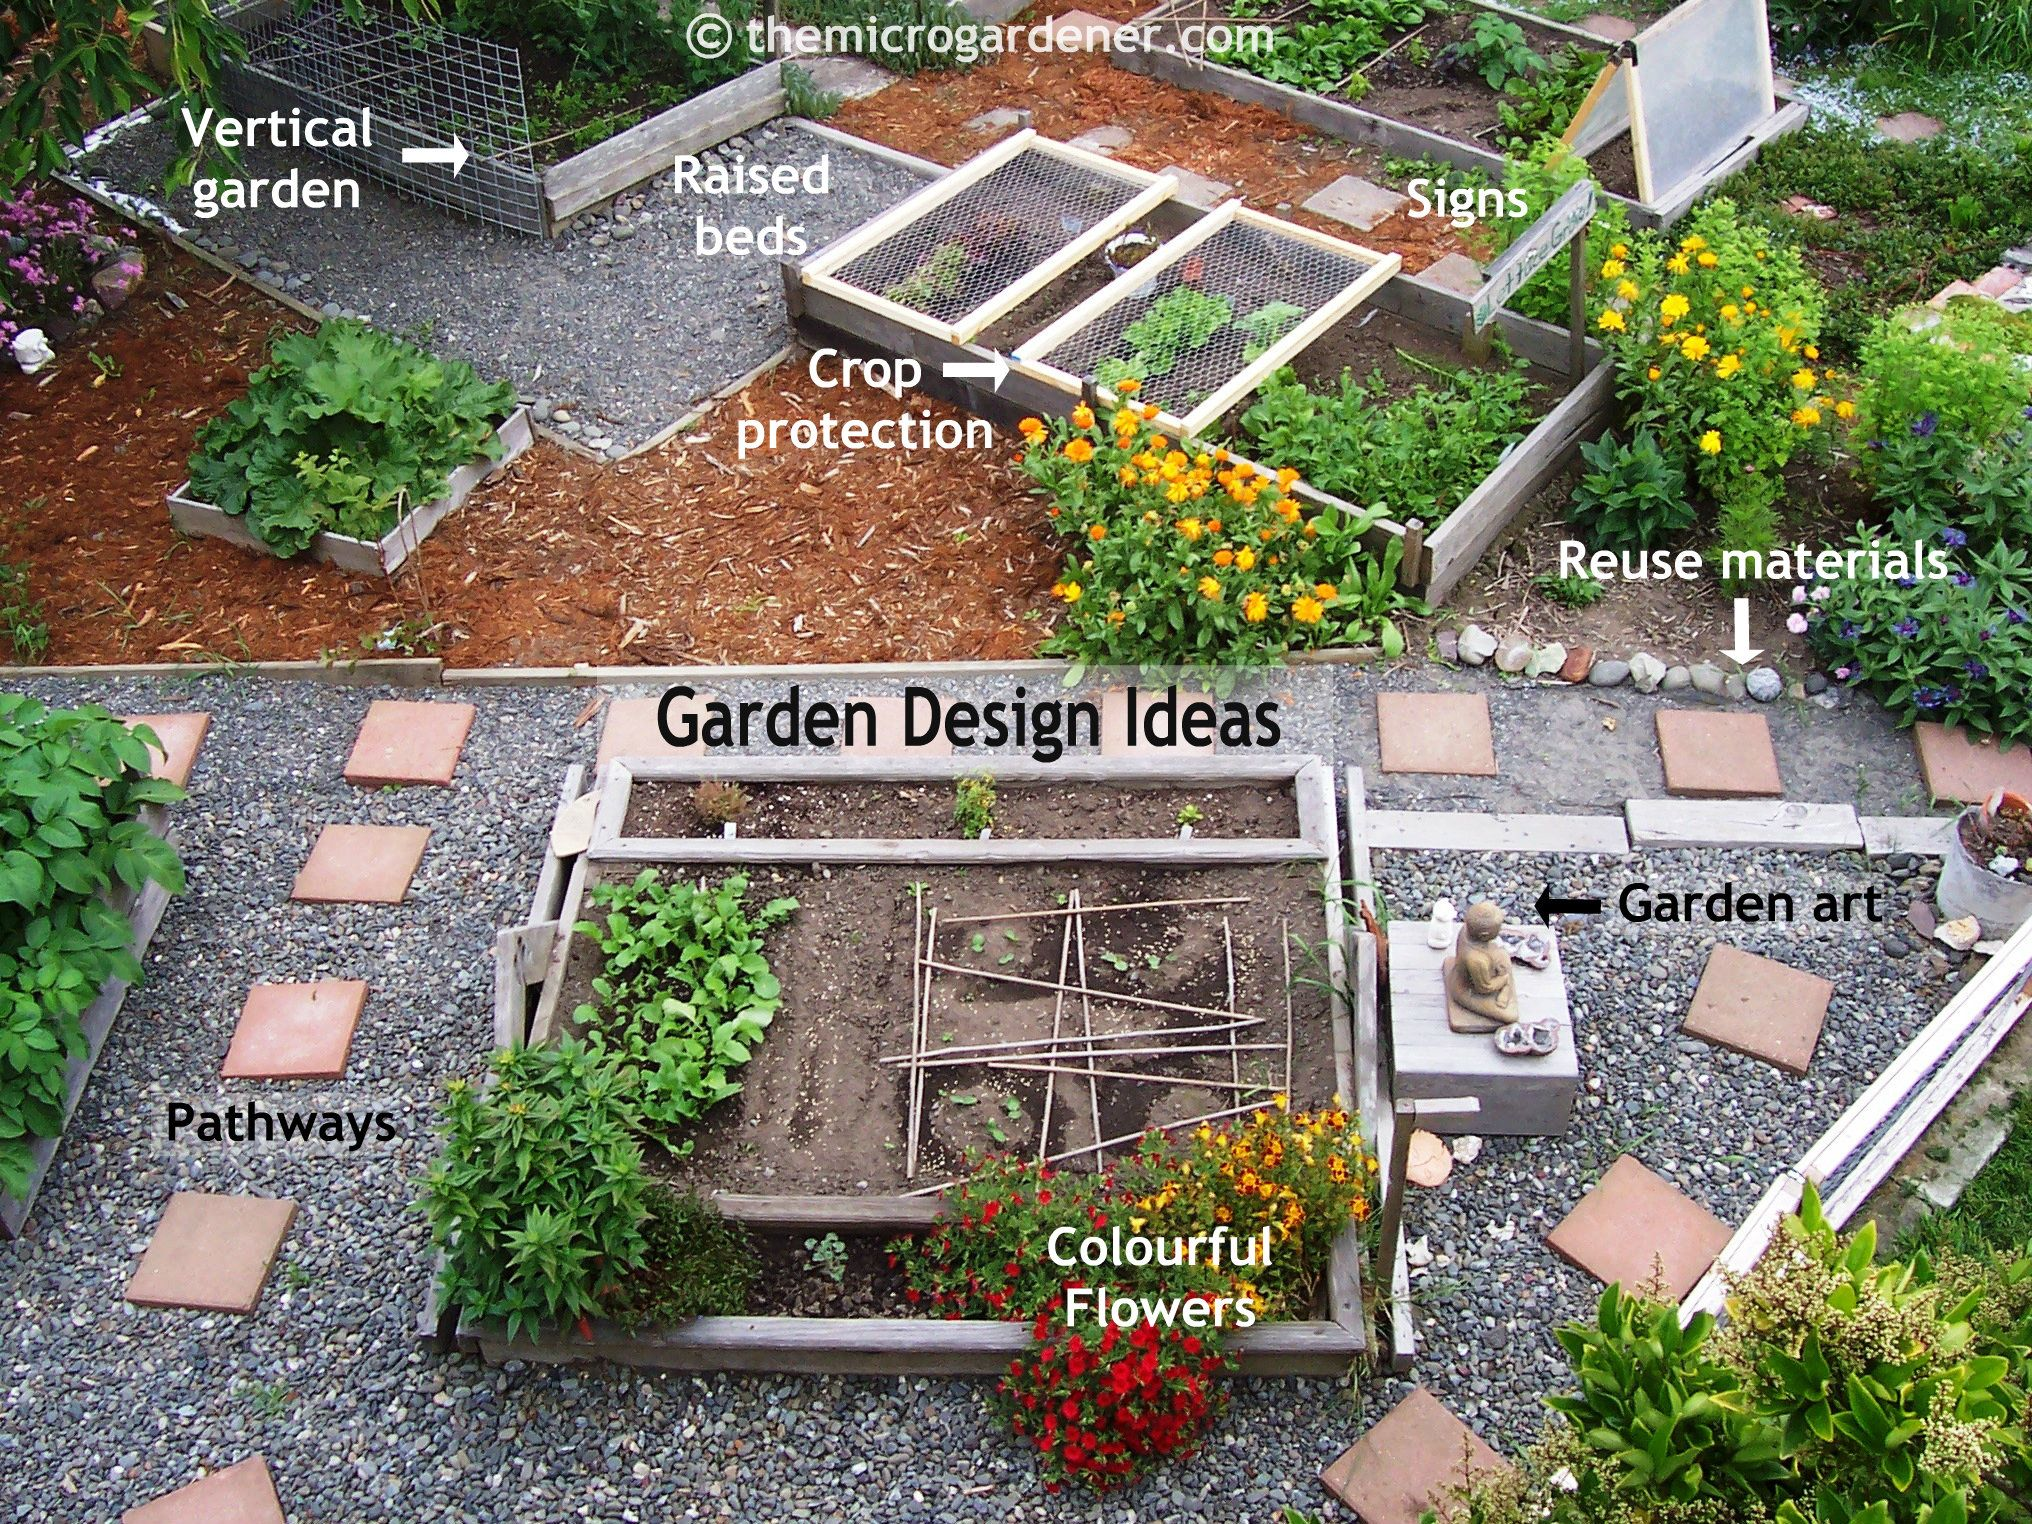 Small garden design ideas on pinterest vertical gardens small gard - Small space garden design ideas set ...